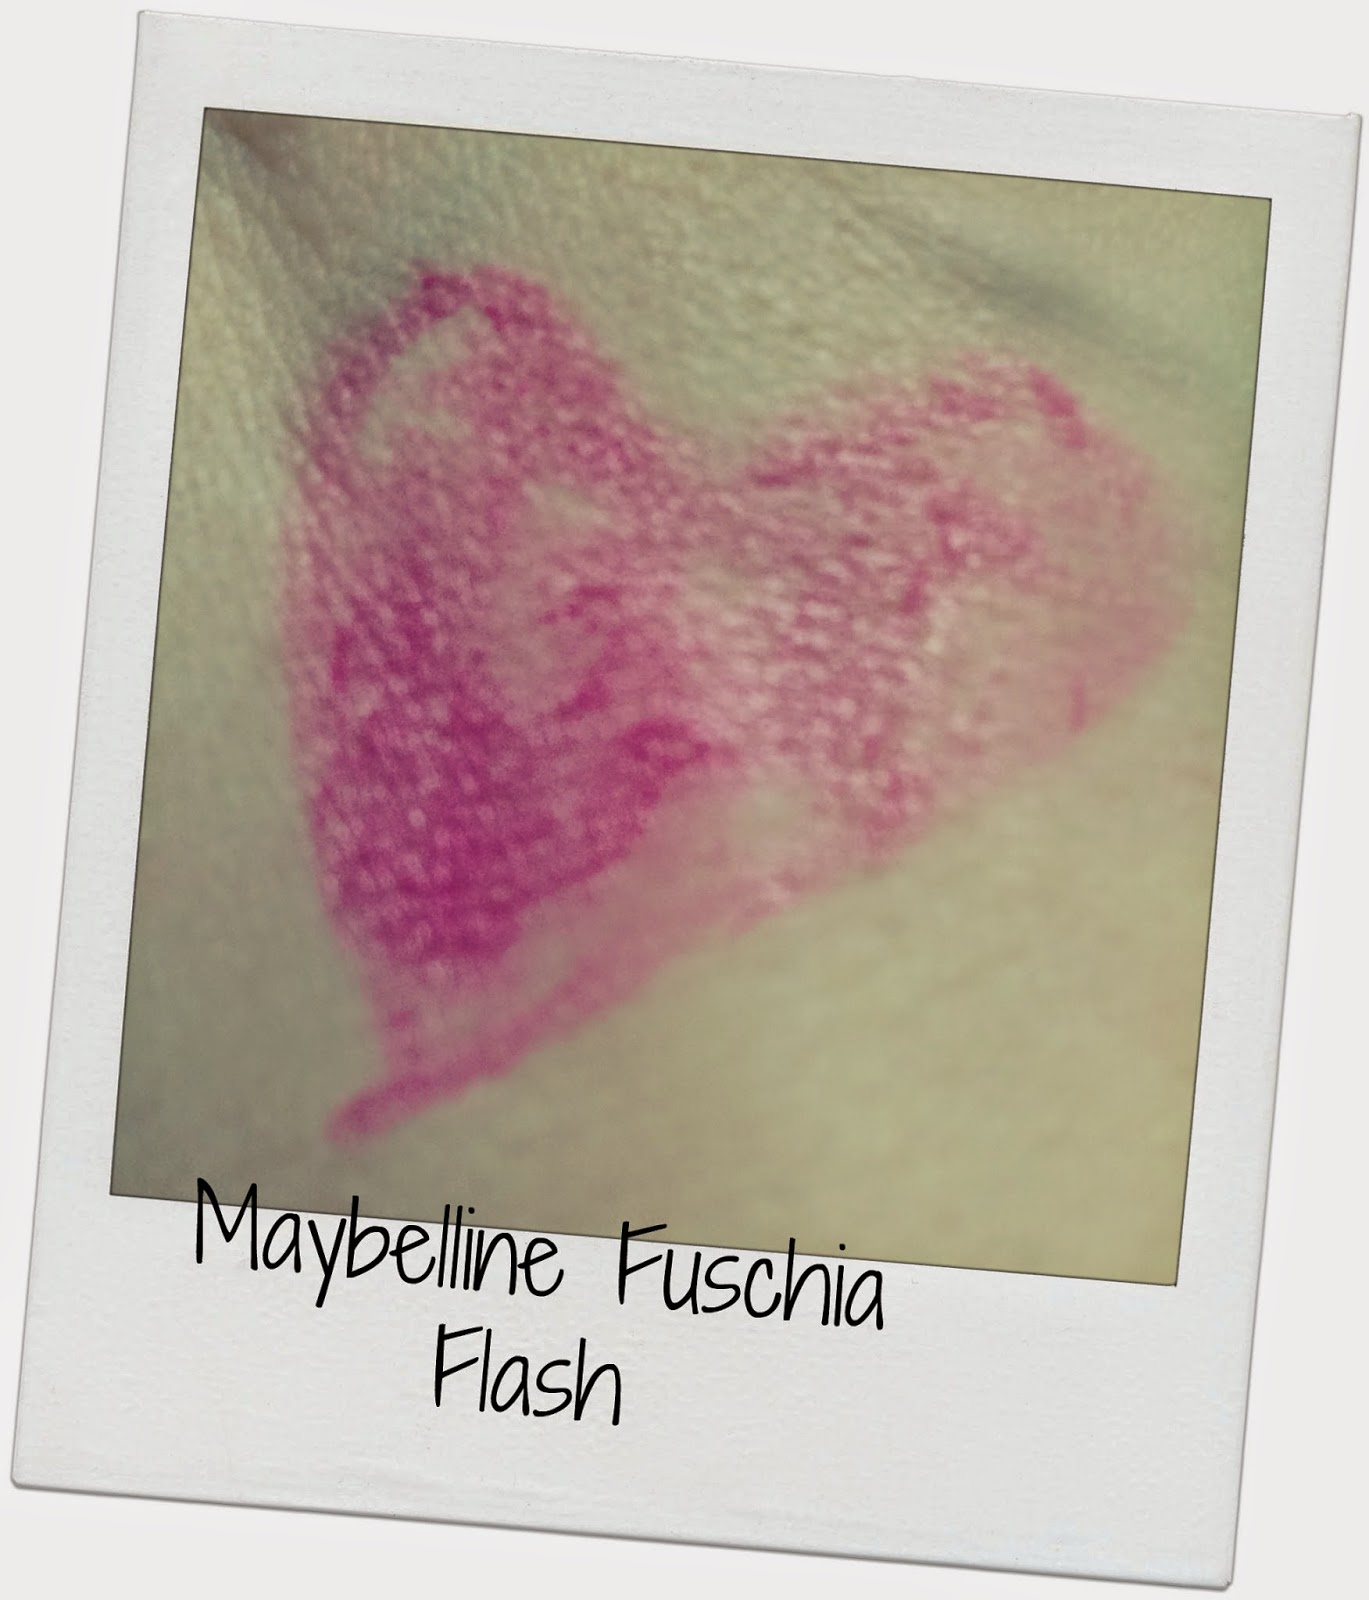 Maybelline Fuchsia Flash lipstick review